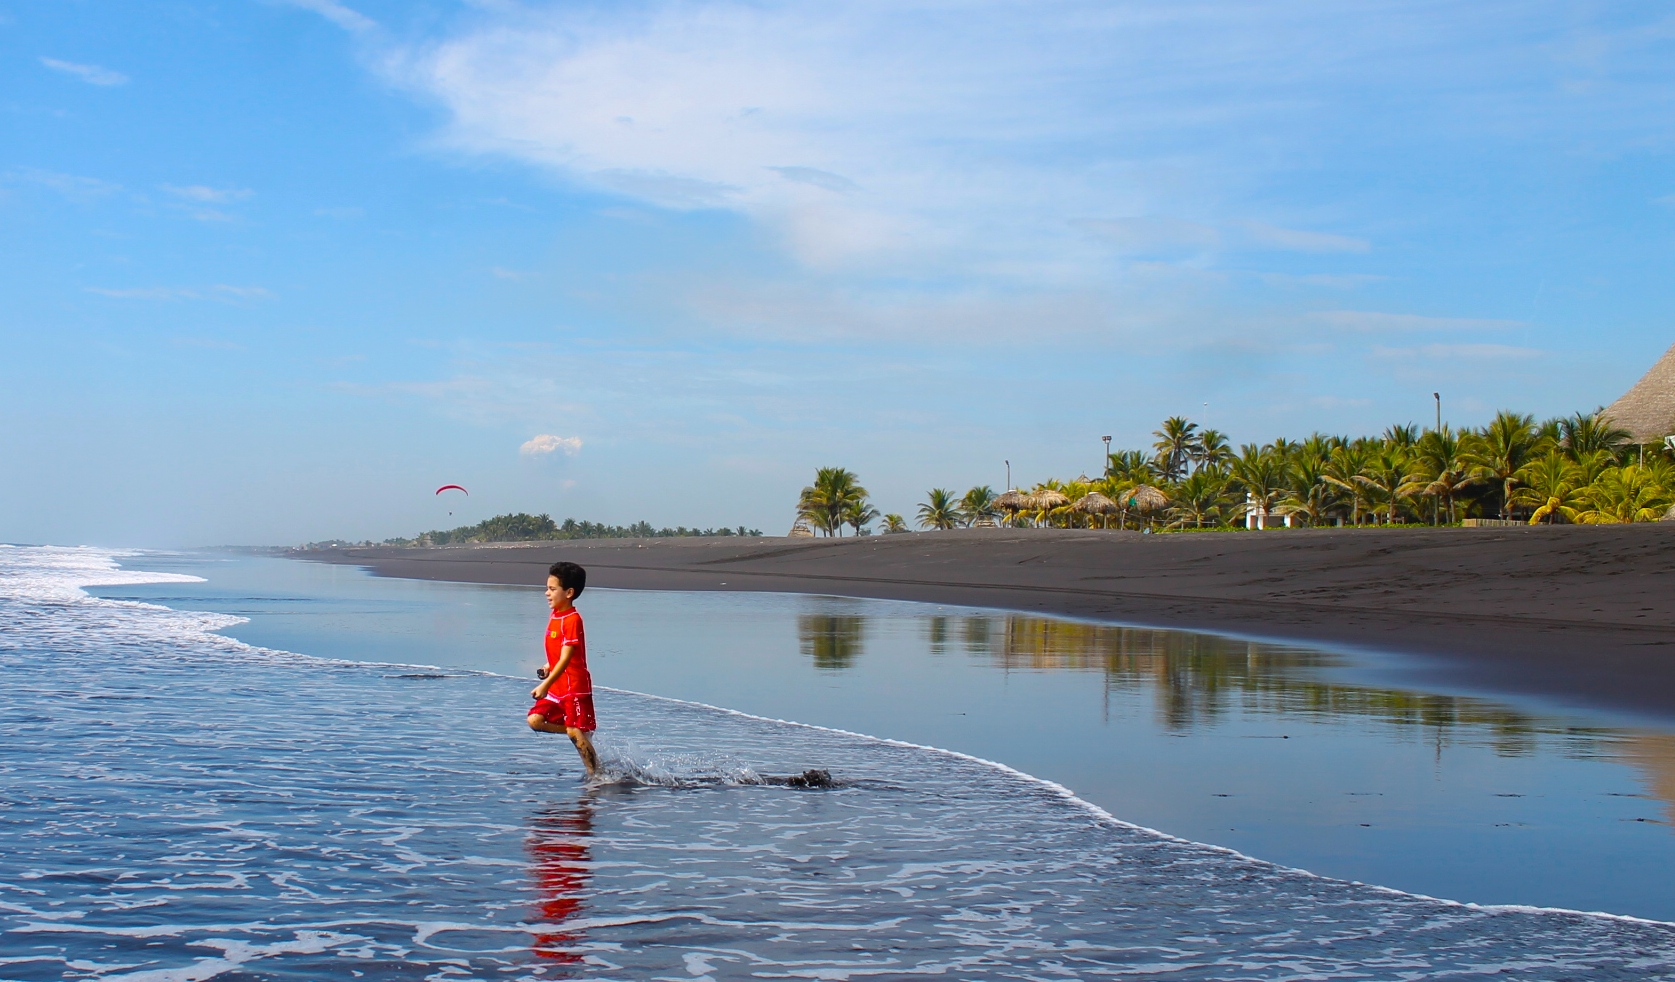 boy running in black san beach in Guatemala